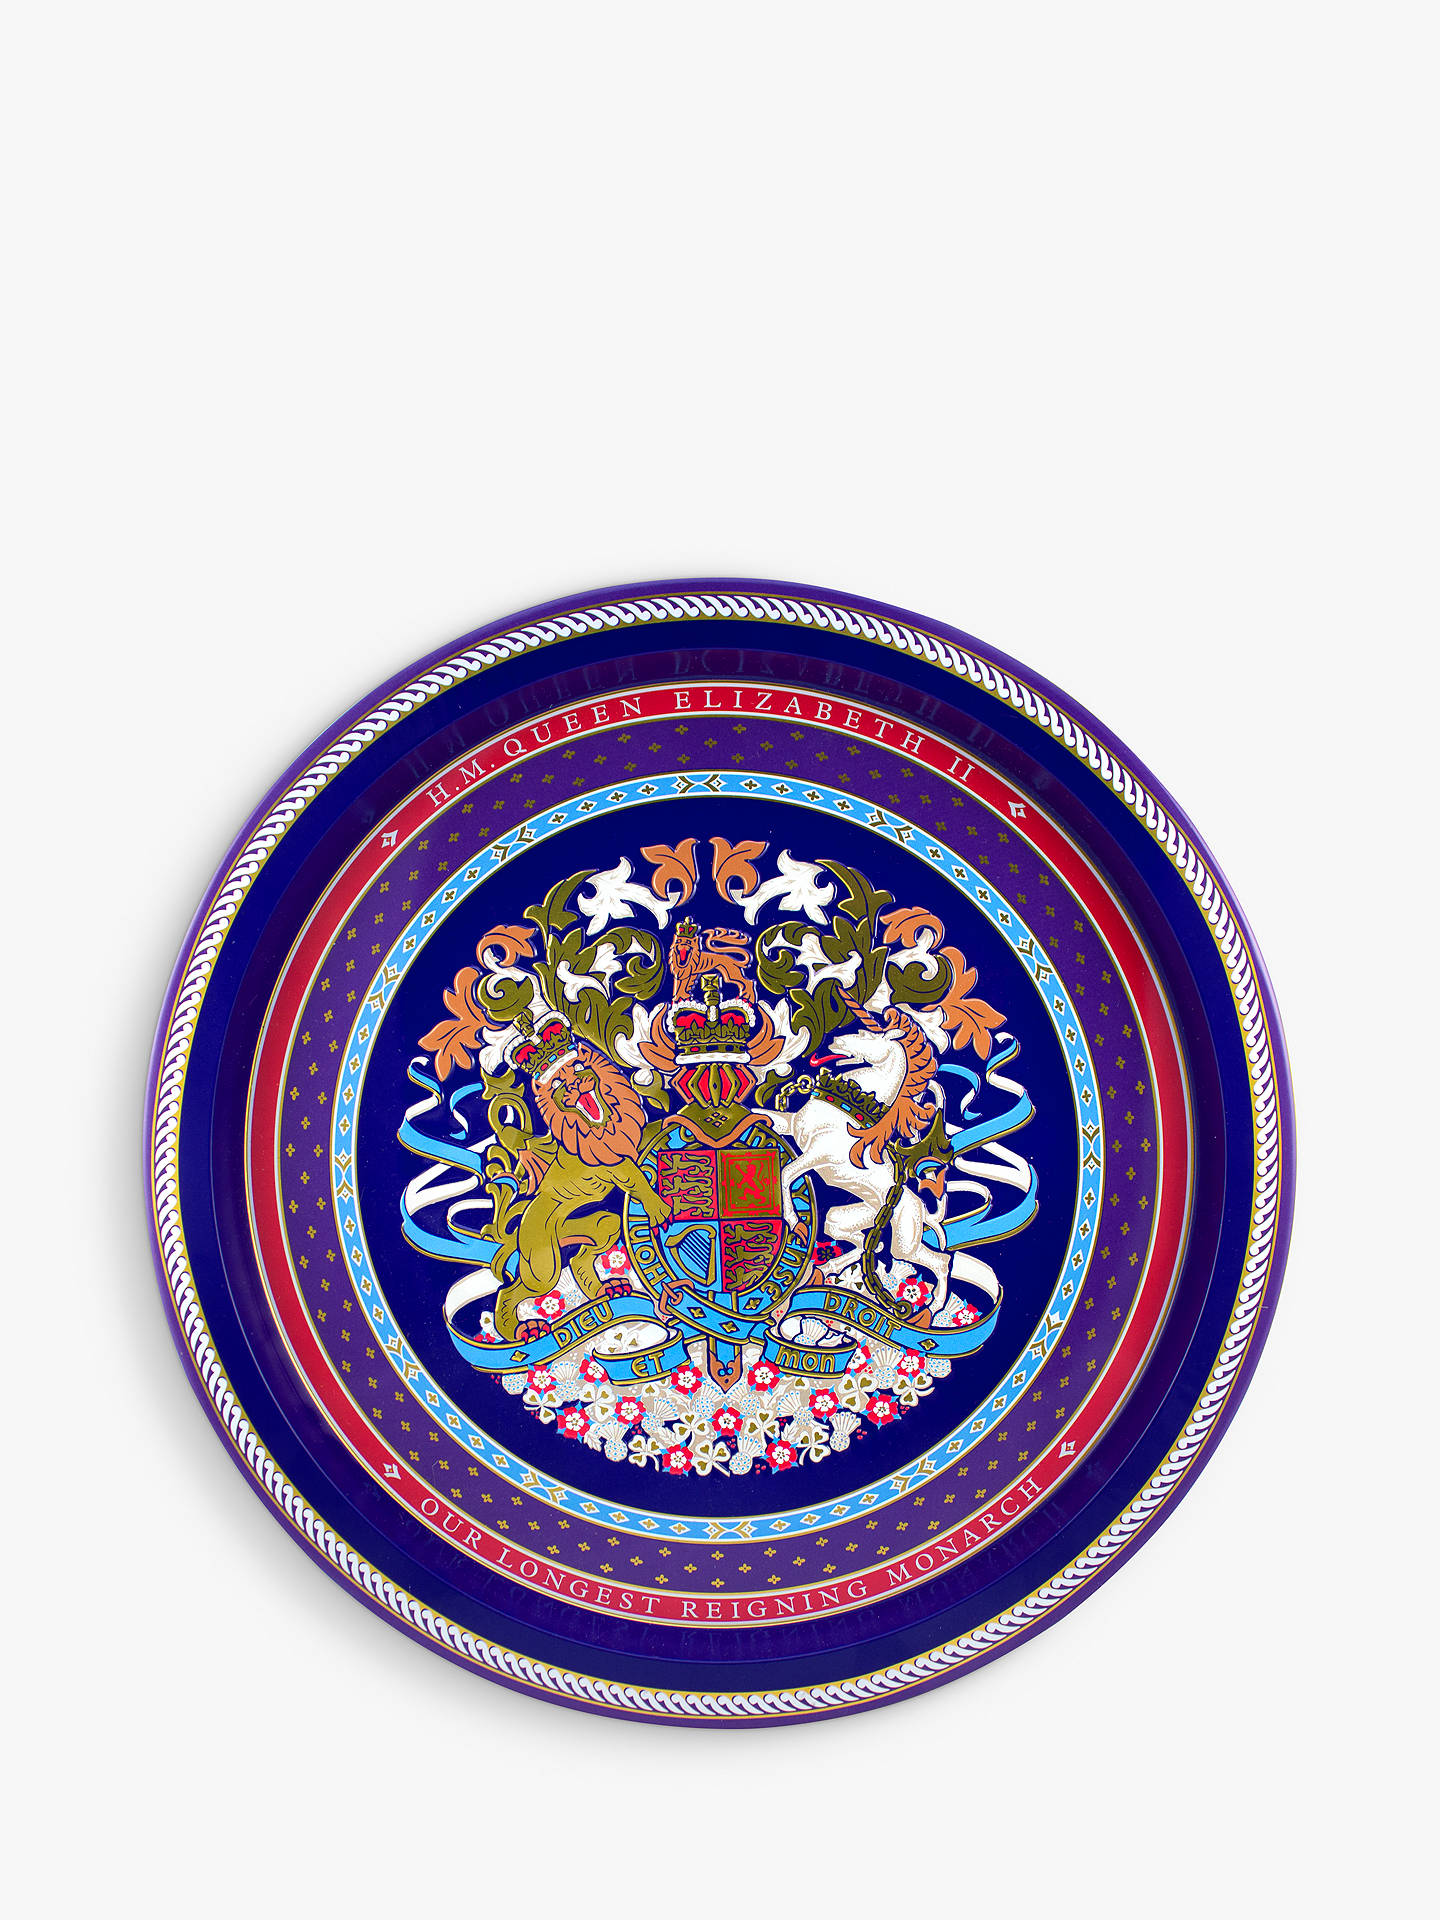 BuyRoyal Collection Longest Reigning Monarch Tray Online at johnlewis.com